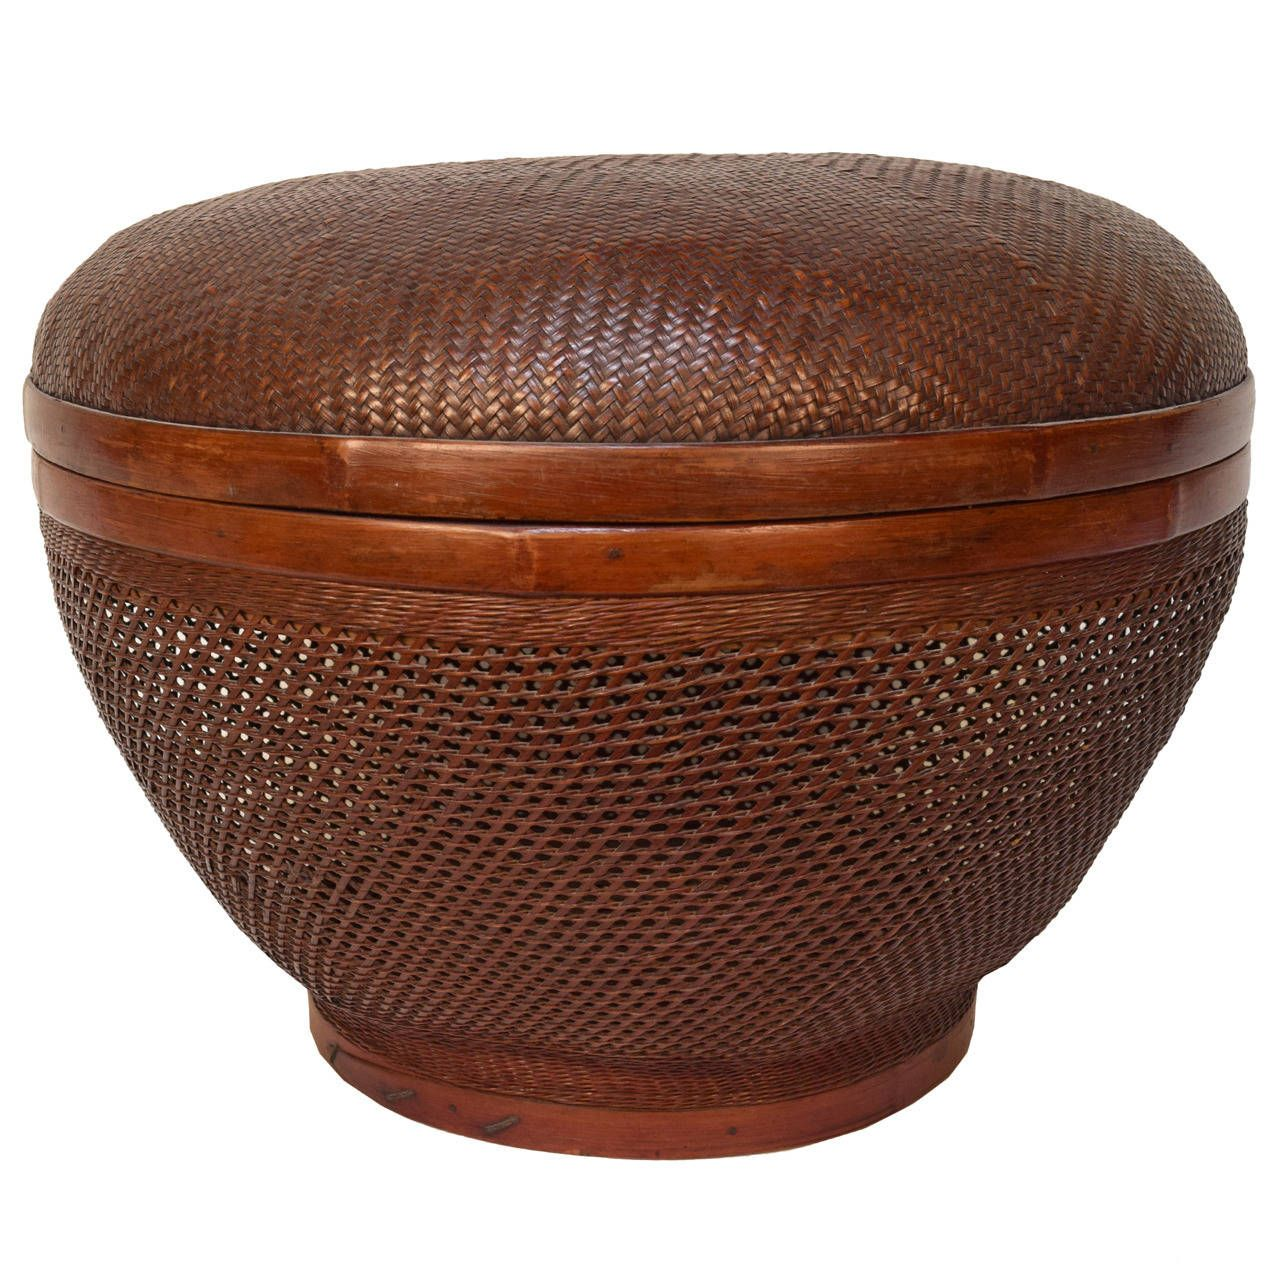 chinese open weave covered basket  open weave and decorative objects - chinese open weave covered basket